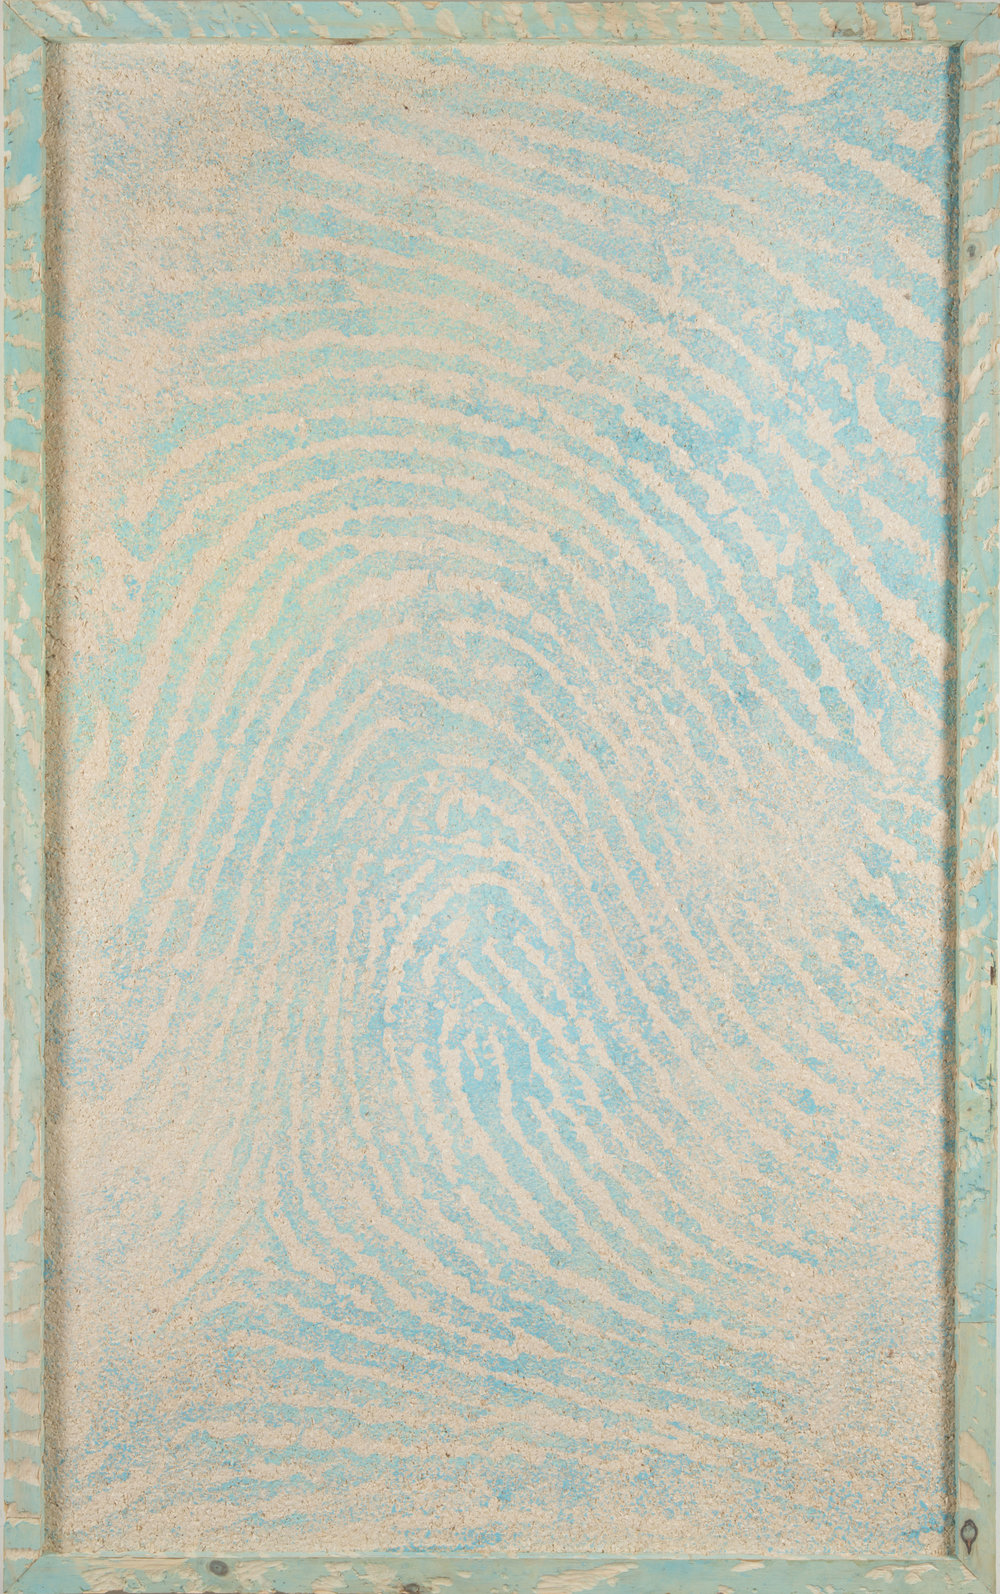 John Baldessari, 2014 from the series  Woodblocks  malachite ink on paper made from pinewood in pinewood block frame 165 x 103 x 6,4 cm - 64 7/8 x 40 1/2 x 2 1/2 inches